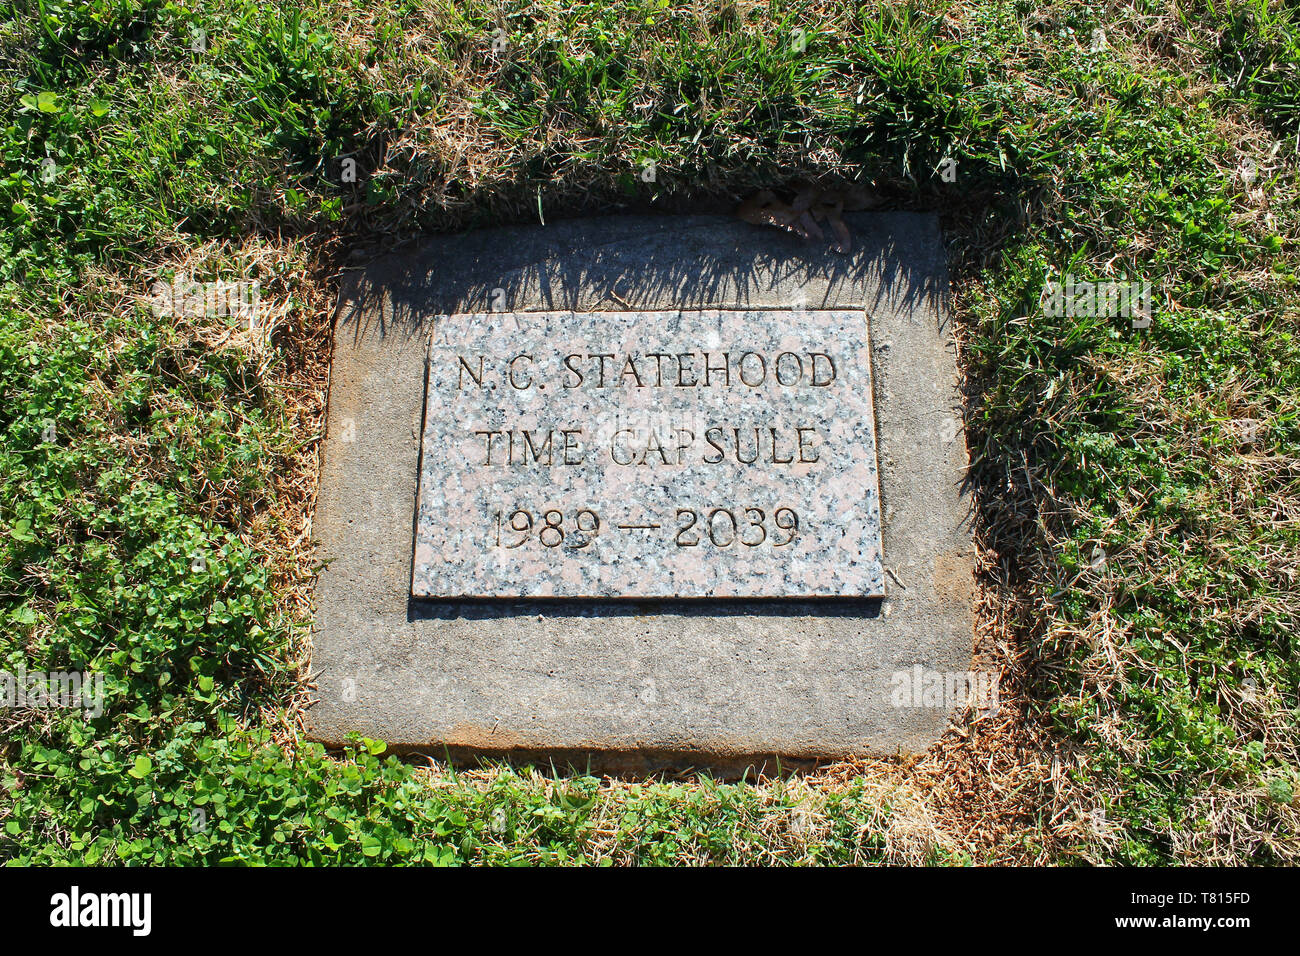 A time capsule is marked so a future generation will unearth it in 50 years. Stock Photo